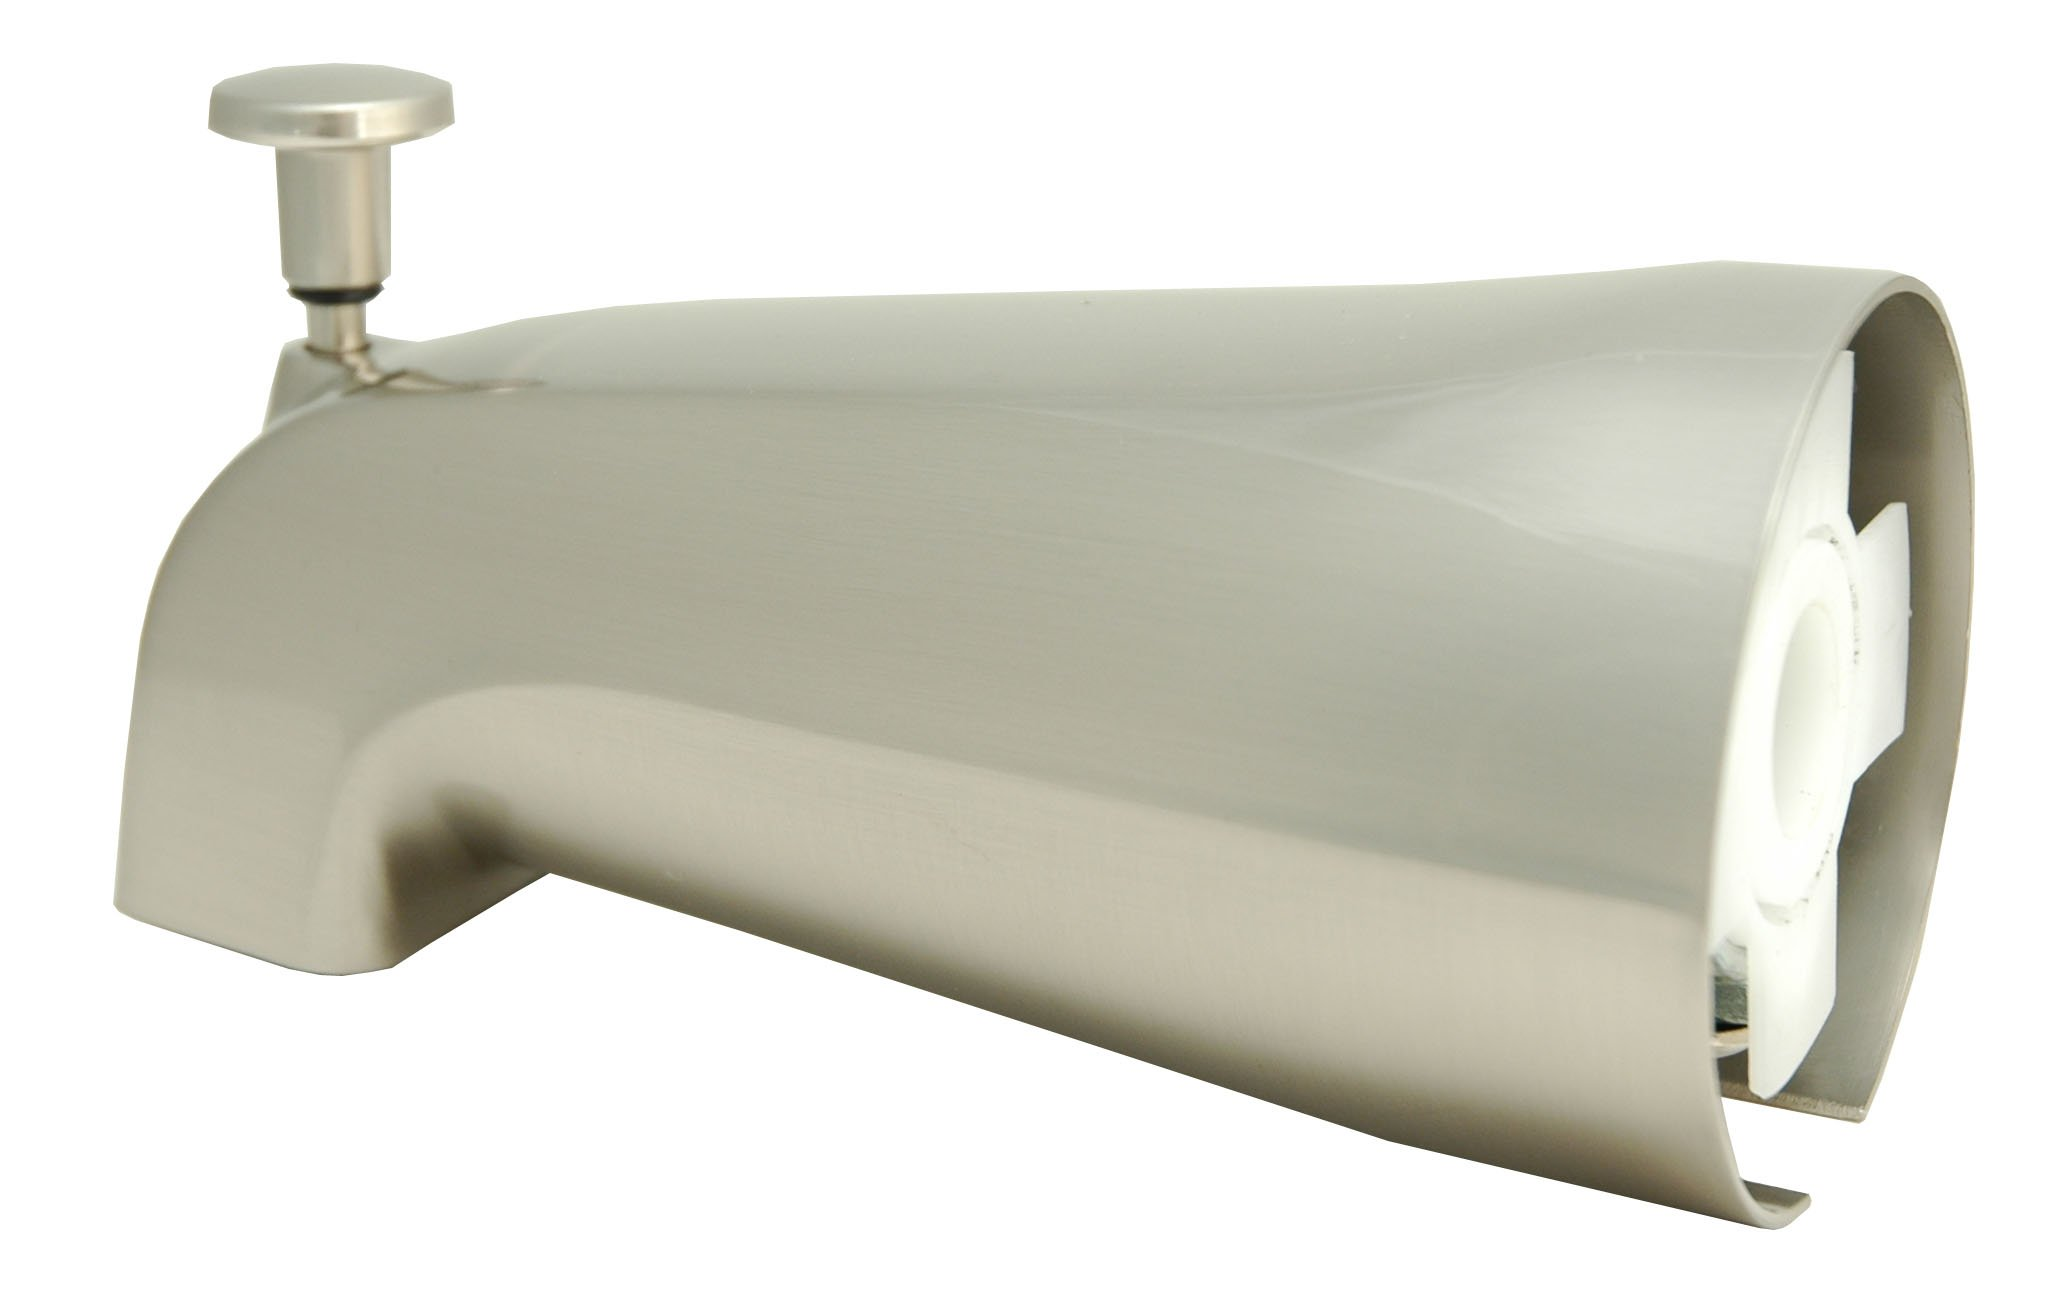 Tub Diverter Spout, Satin Nickel Finish, Slide on Type - By Plumb USA by PlumbUSA